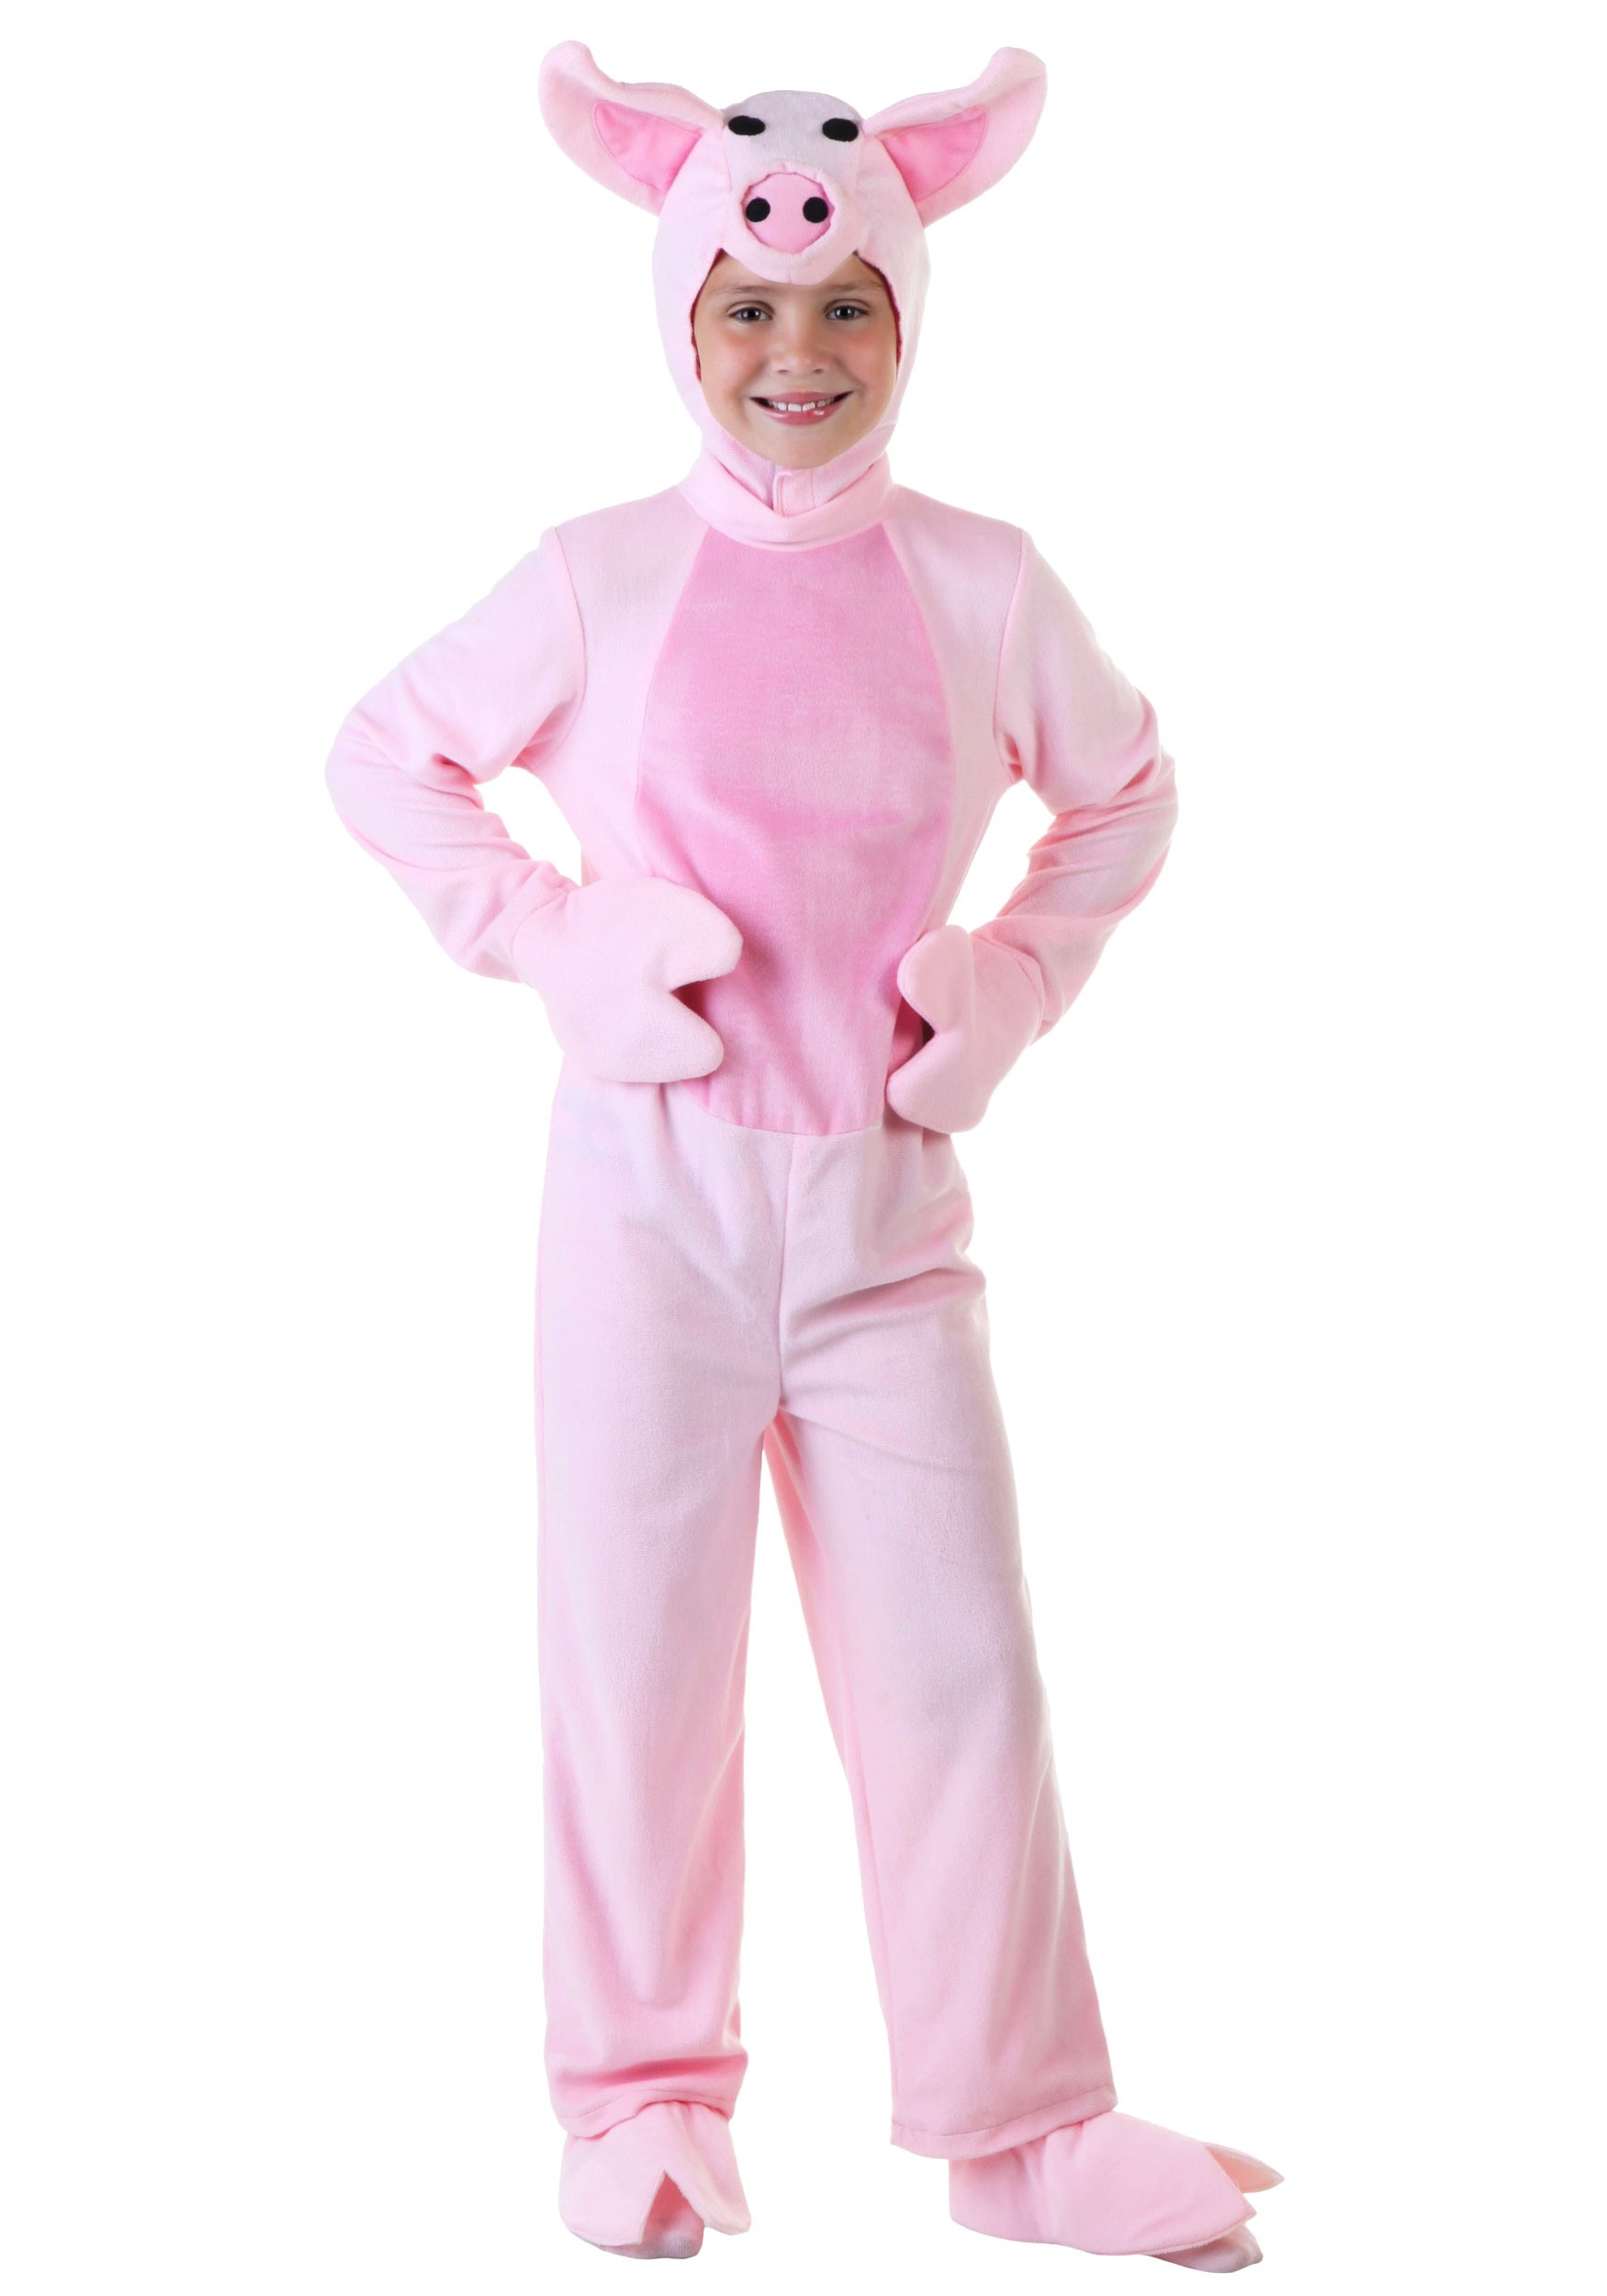 Pink Pig Costume for Kids | Farm Animal Halloween Costume | Exclusive